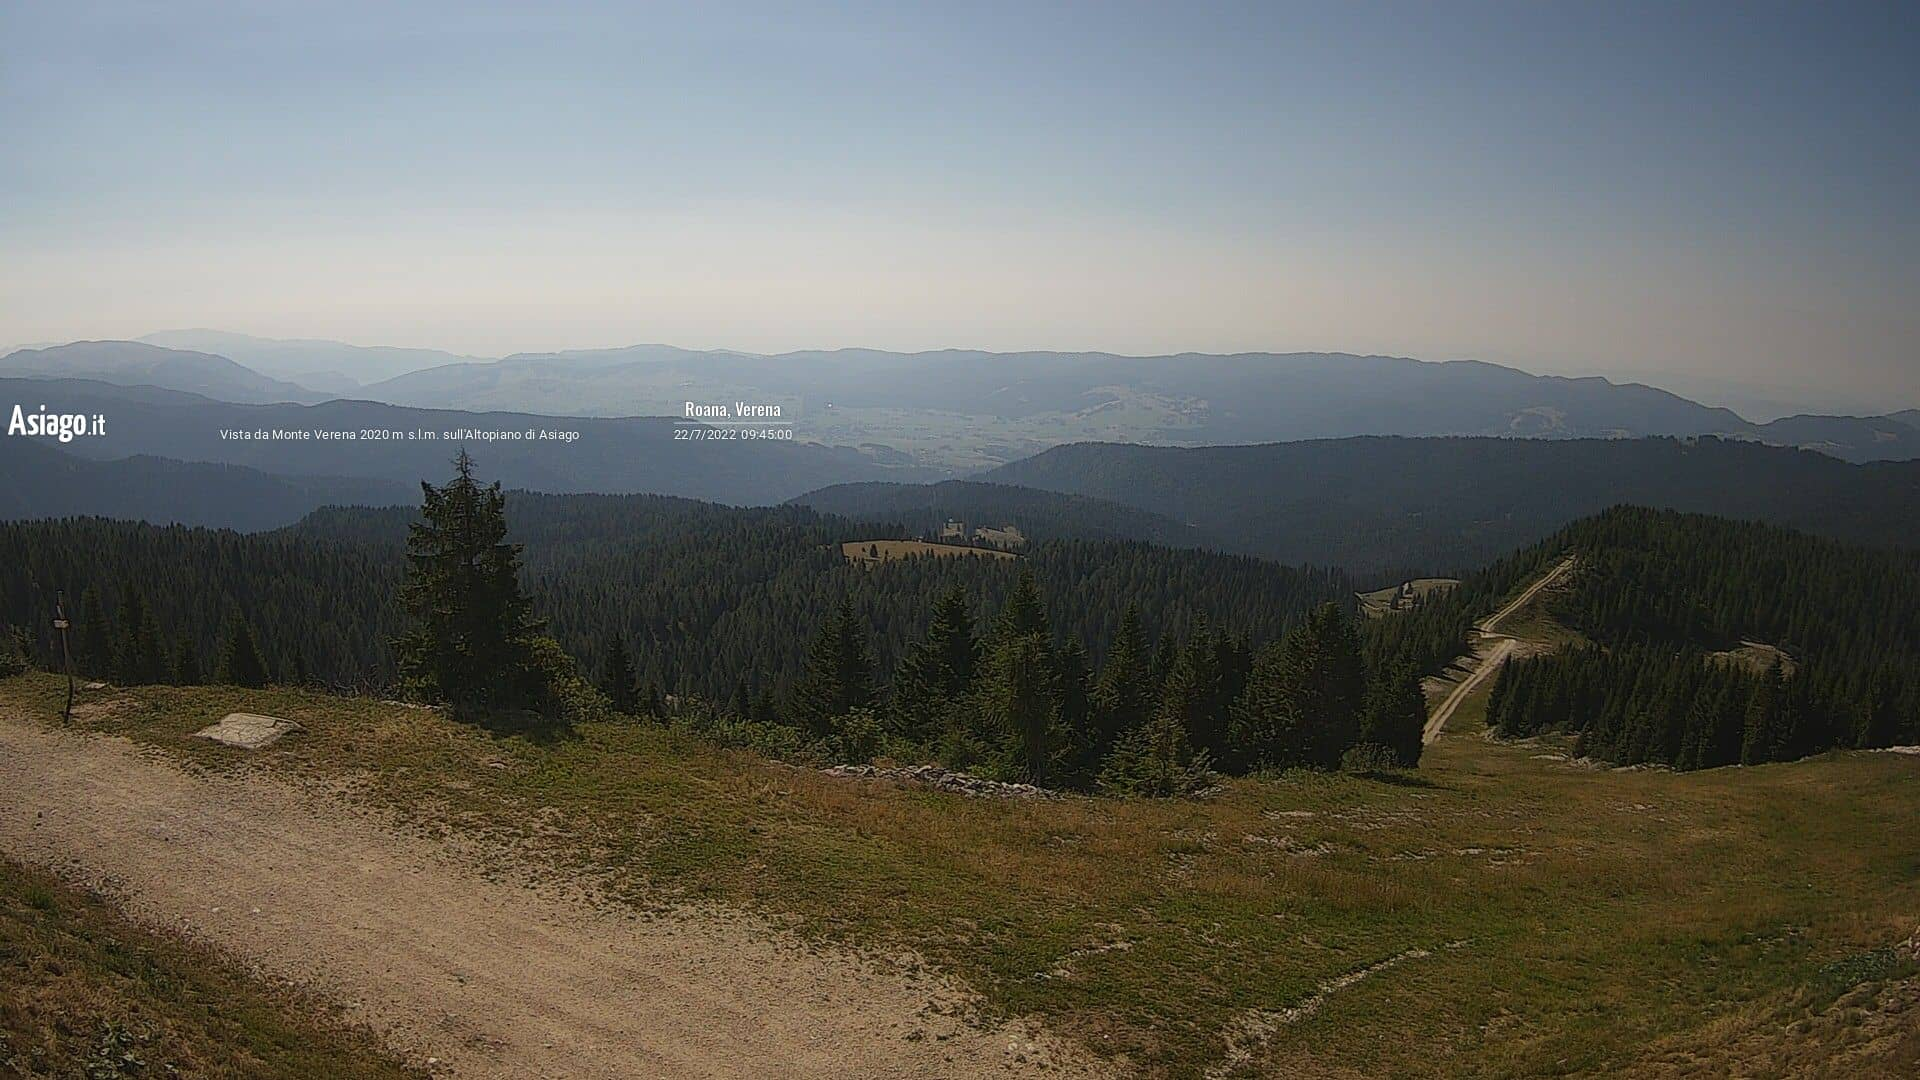 Live webcam of Asiago.It from Monte Verena 2020